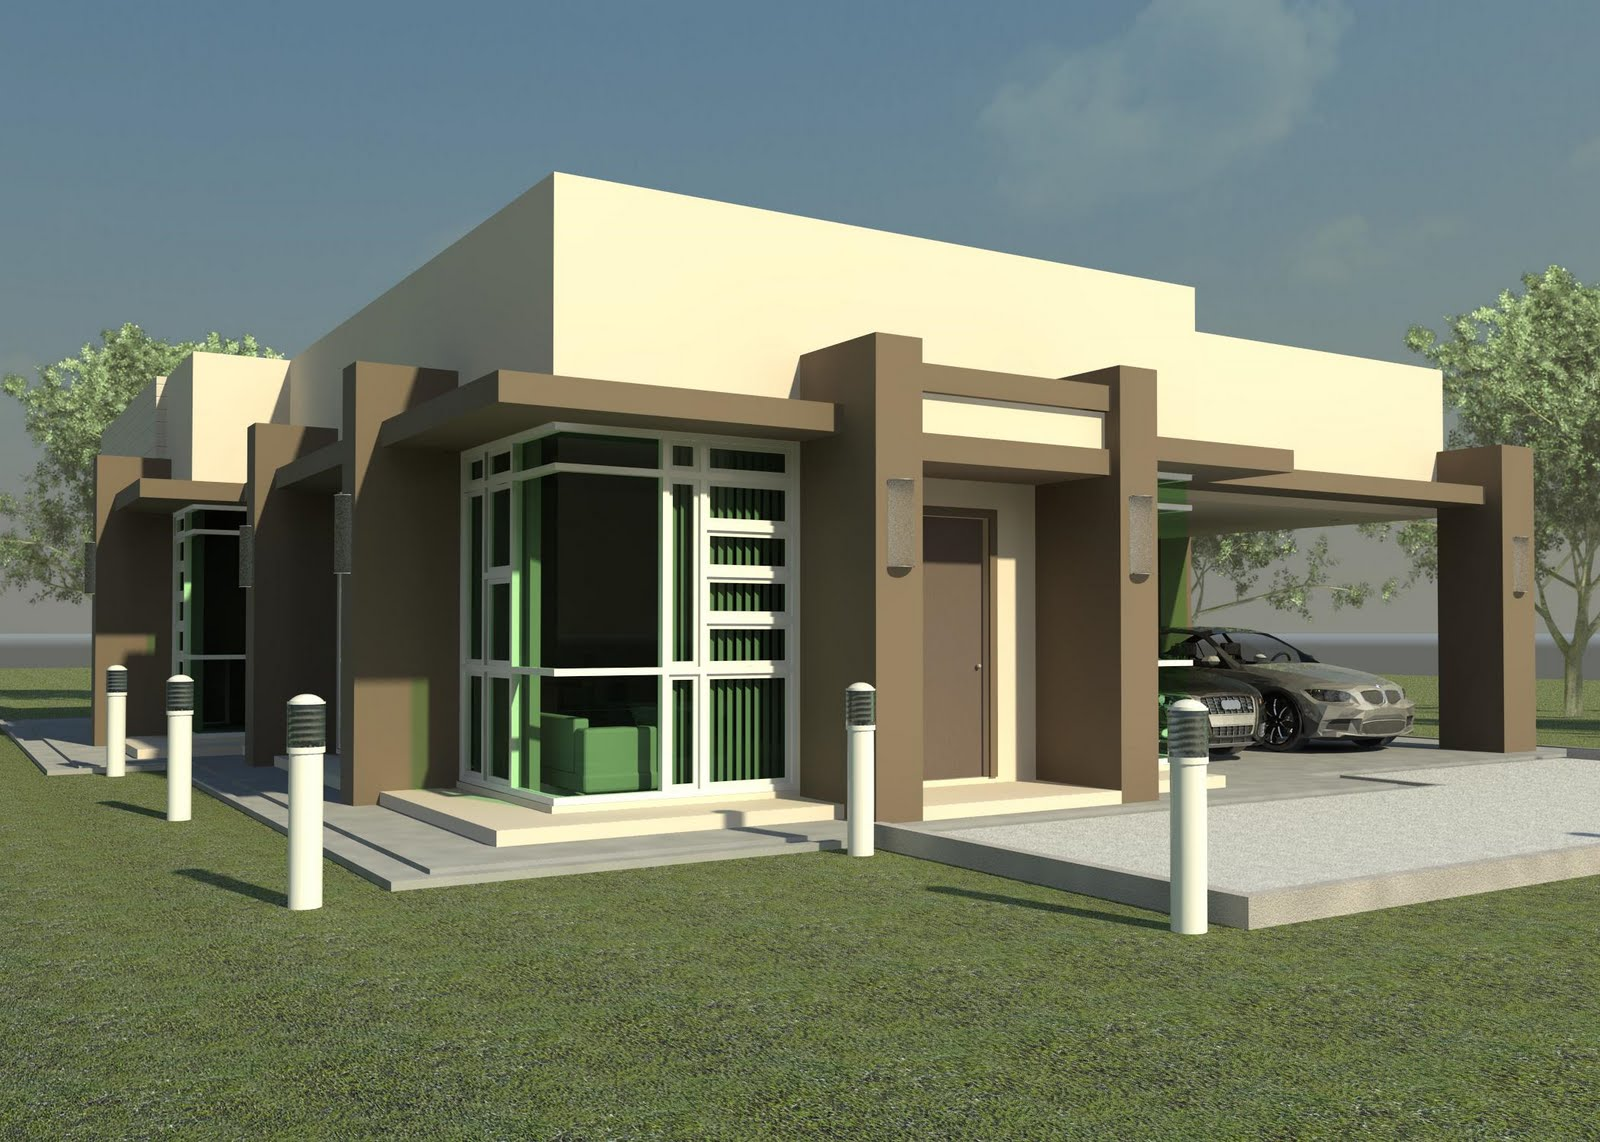 New home designs latest modern small homes designs exterior for Small modern house designs